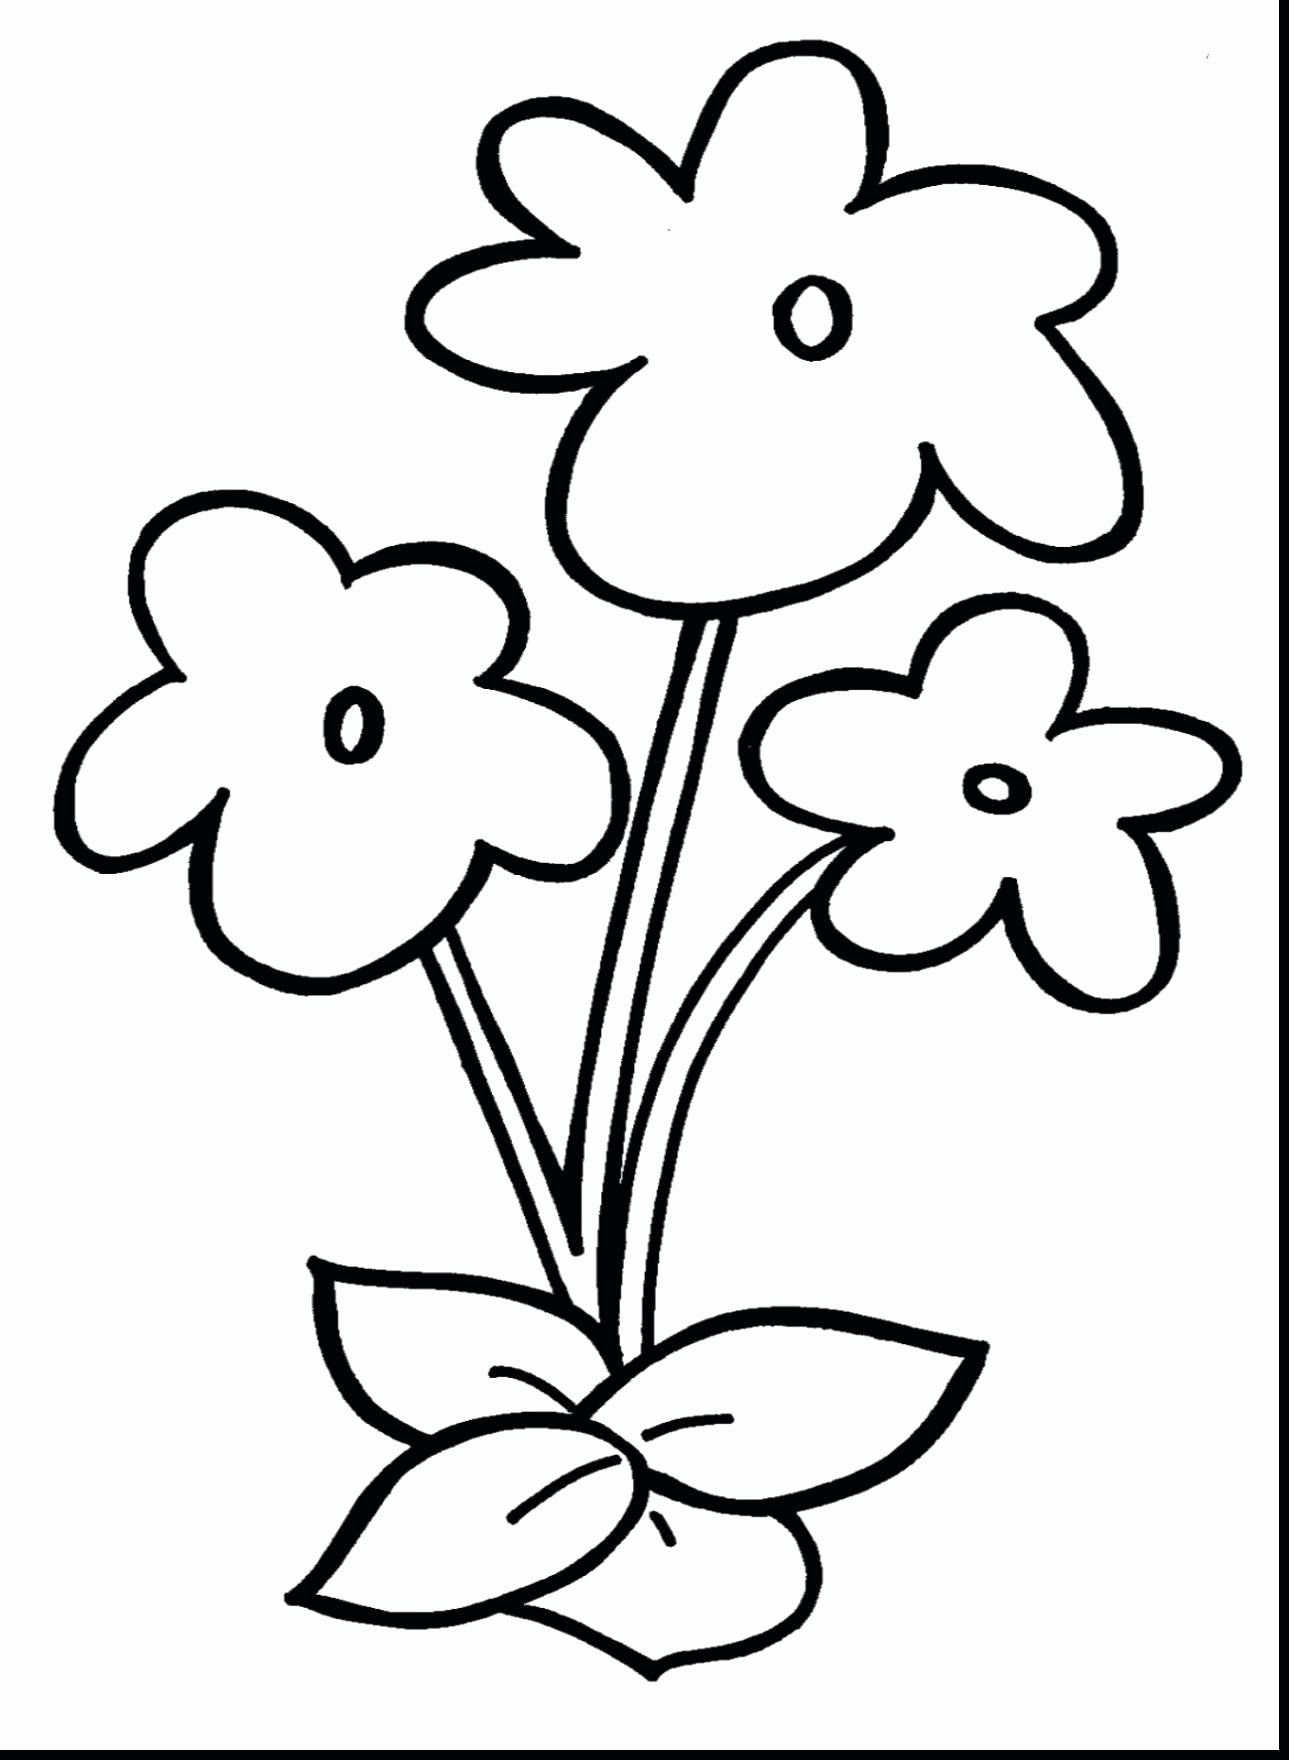 Space Astronaut Coloring Pages Fresh Printable Daffodil Coloring Pages Flower Free Flower Coloring Pages Printable Flower Coloring Pages Mandala Coloring Pages